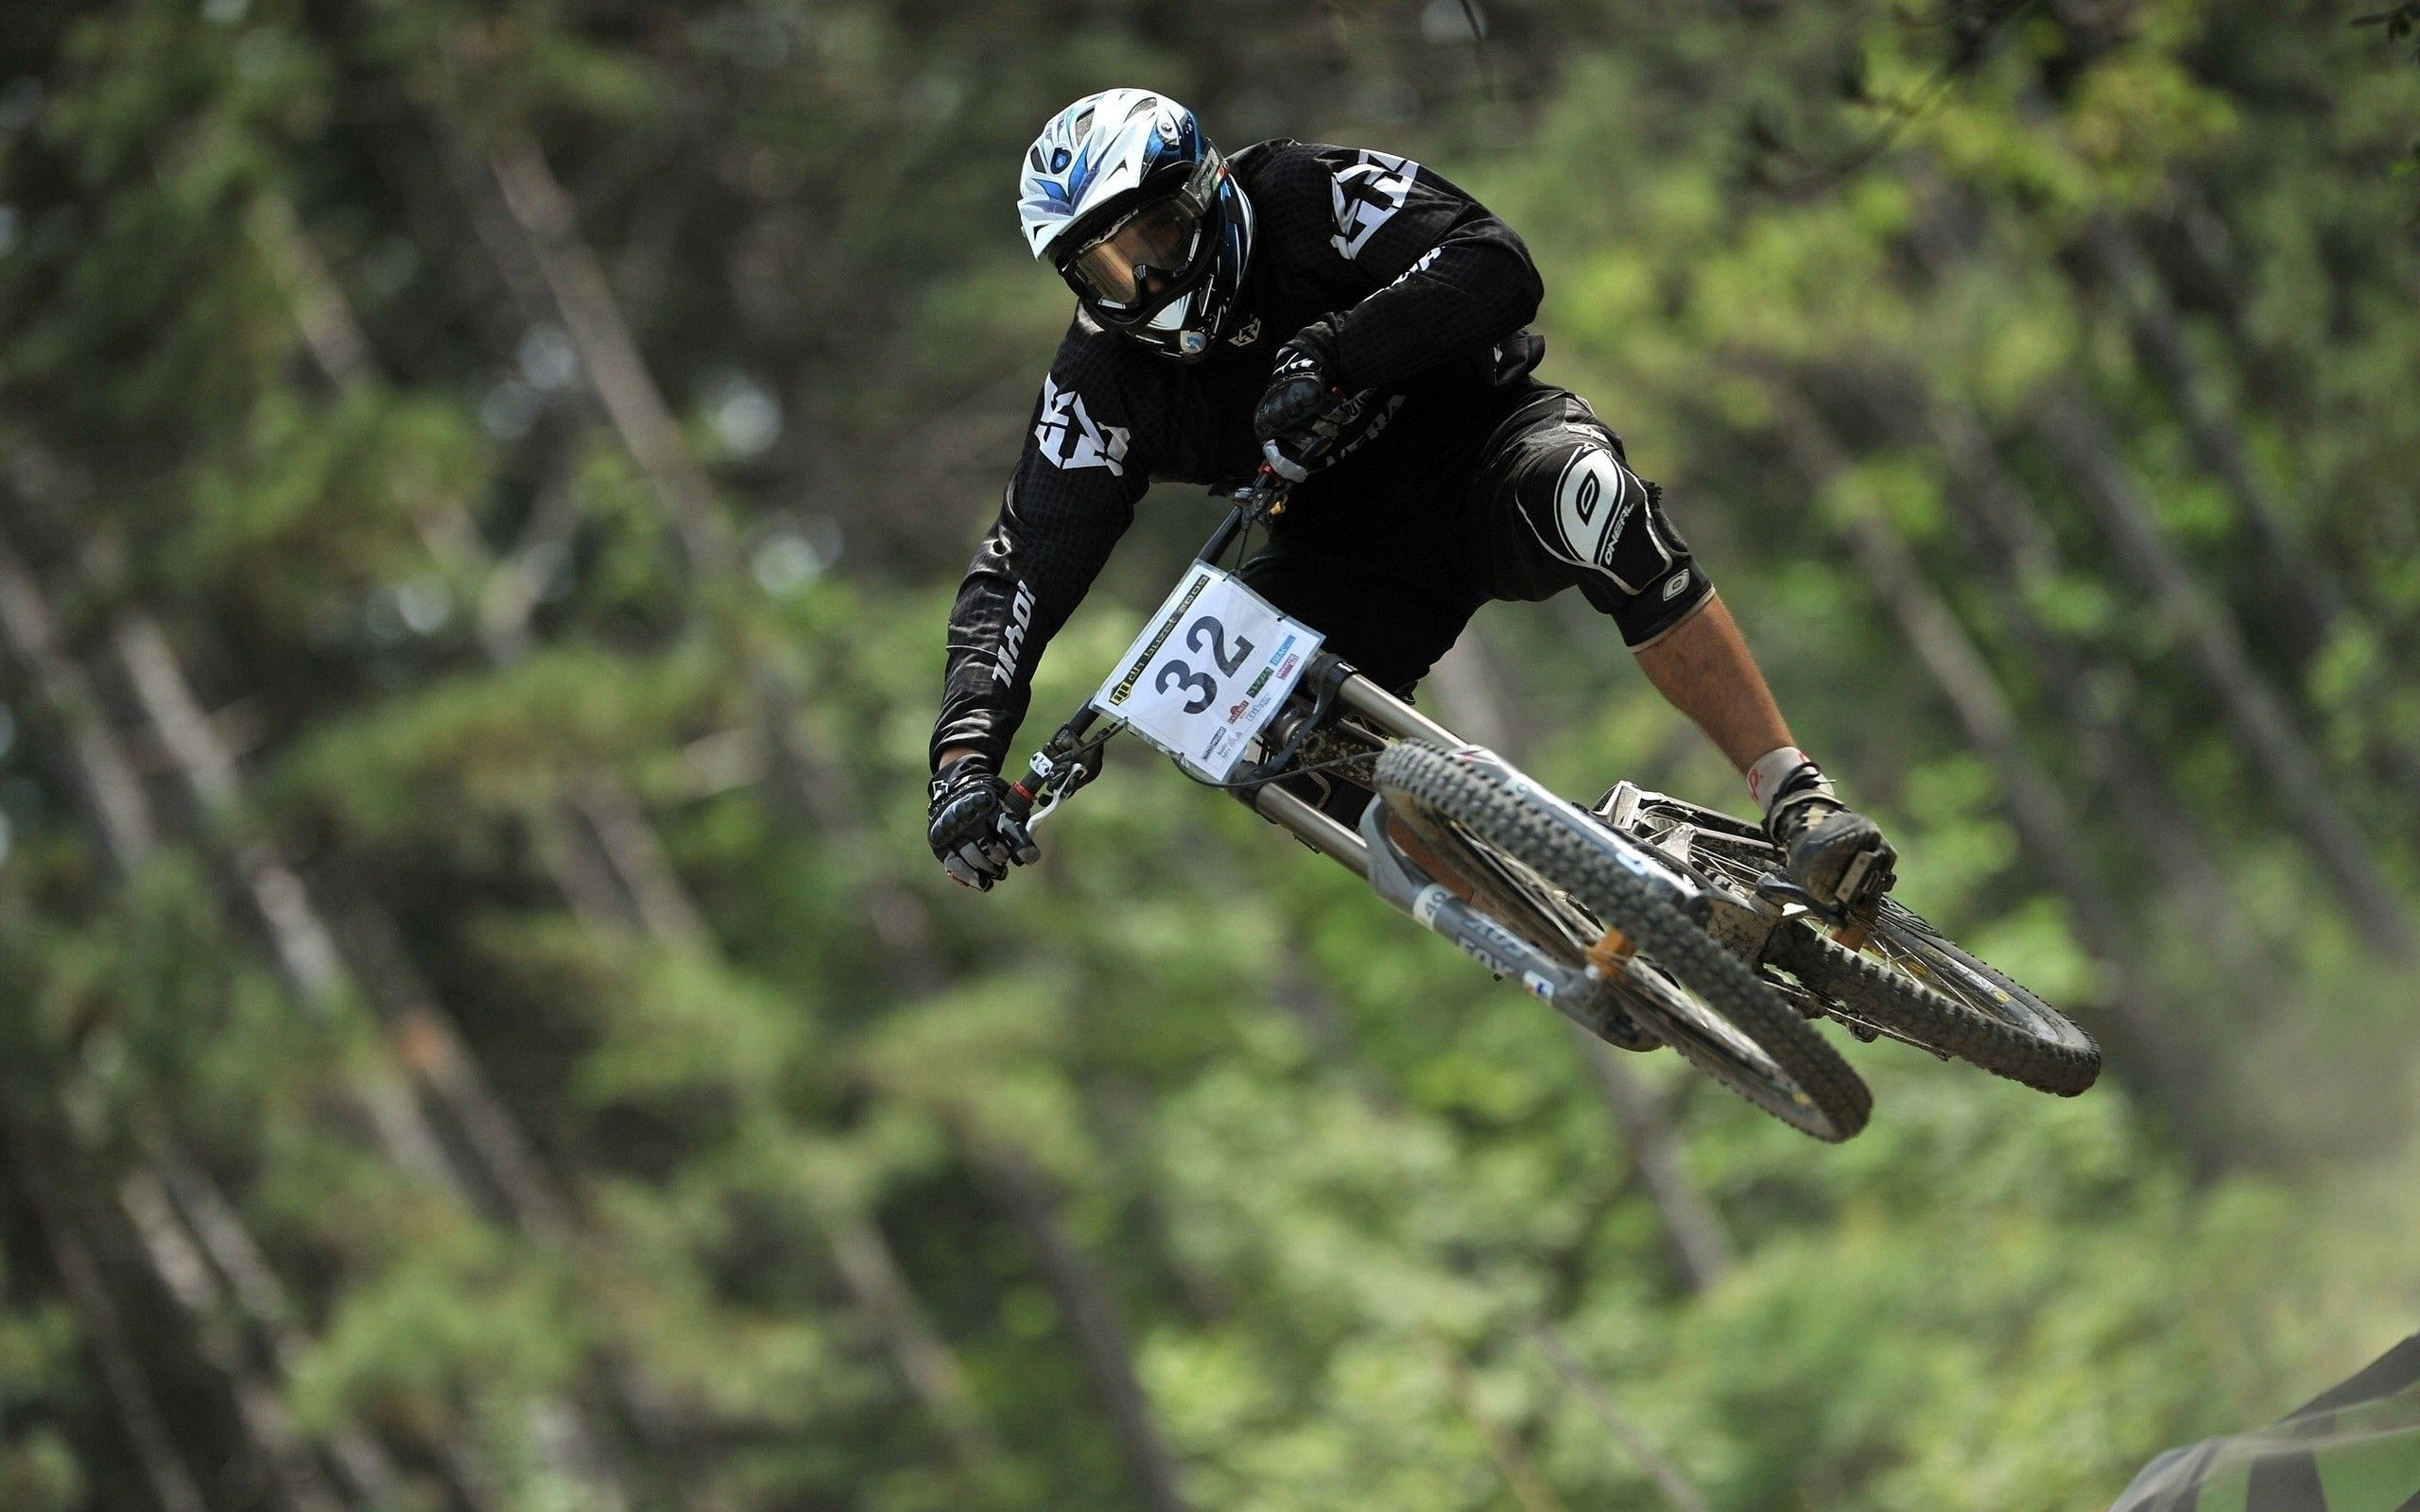 AMB Wallpapers Provides You The Latest Mountain Bike Wallpaper We Update Collection Of On Daily Basis Only For